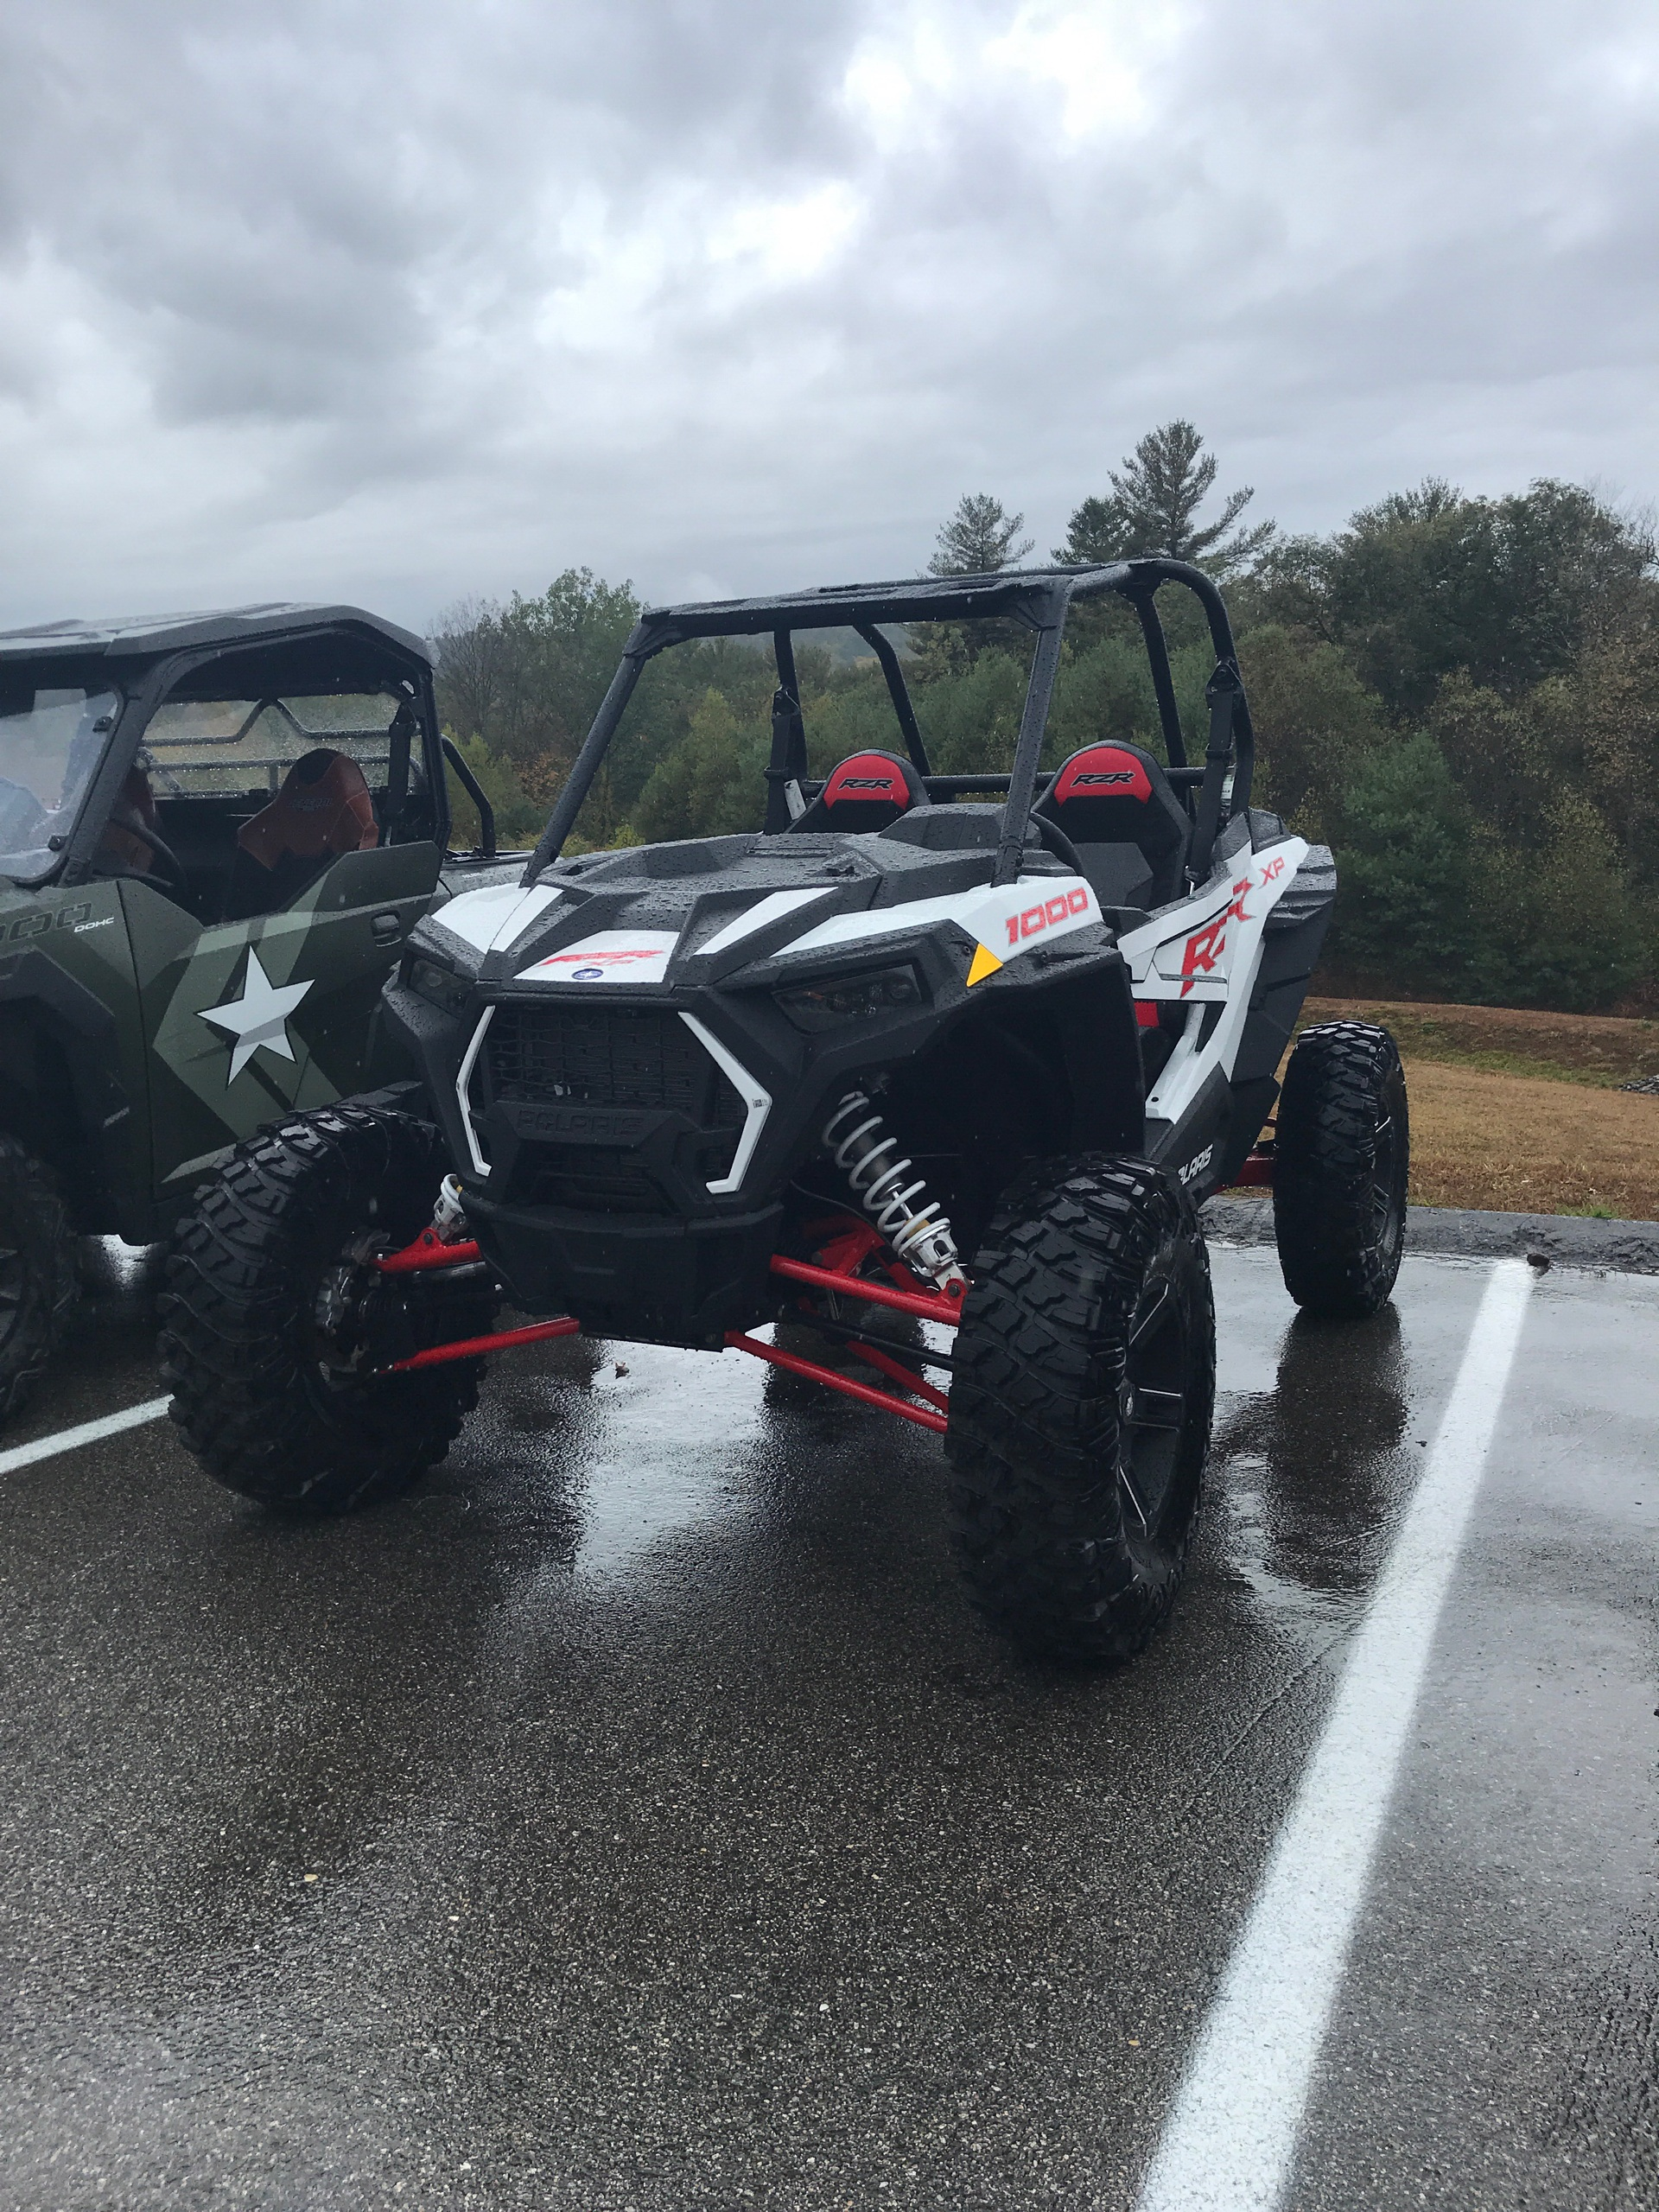 2020 Polaris RZR XP 1000 in Barre, Massachusetts - Photo 1